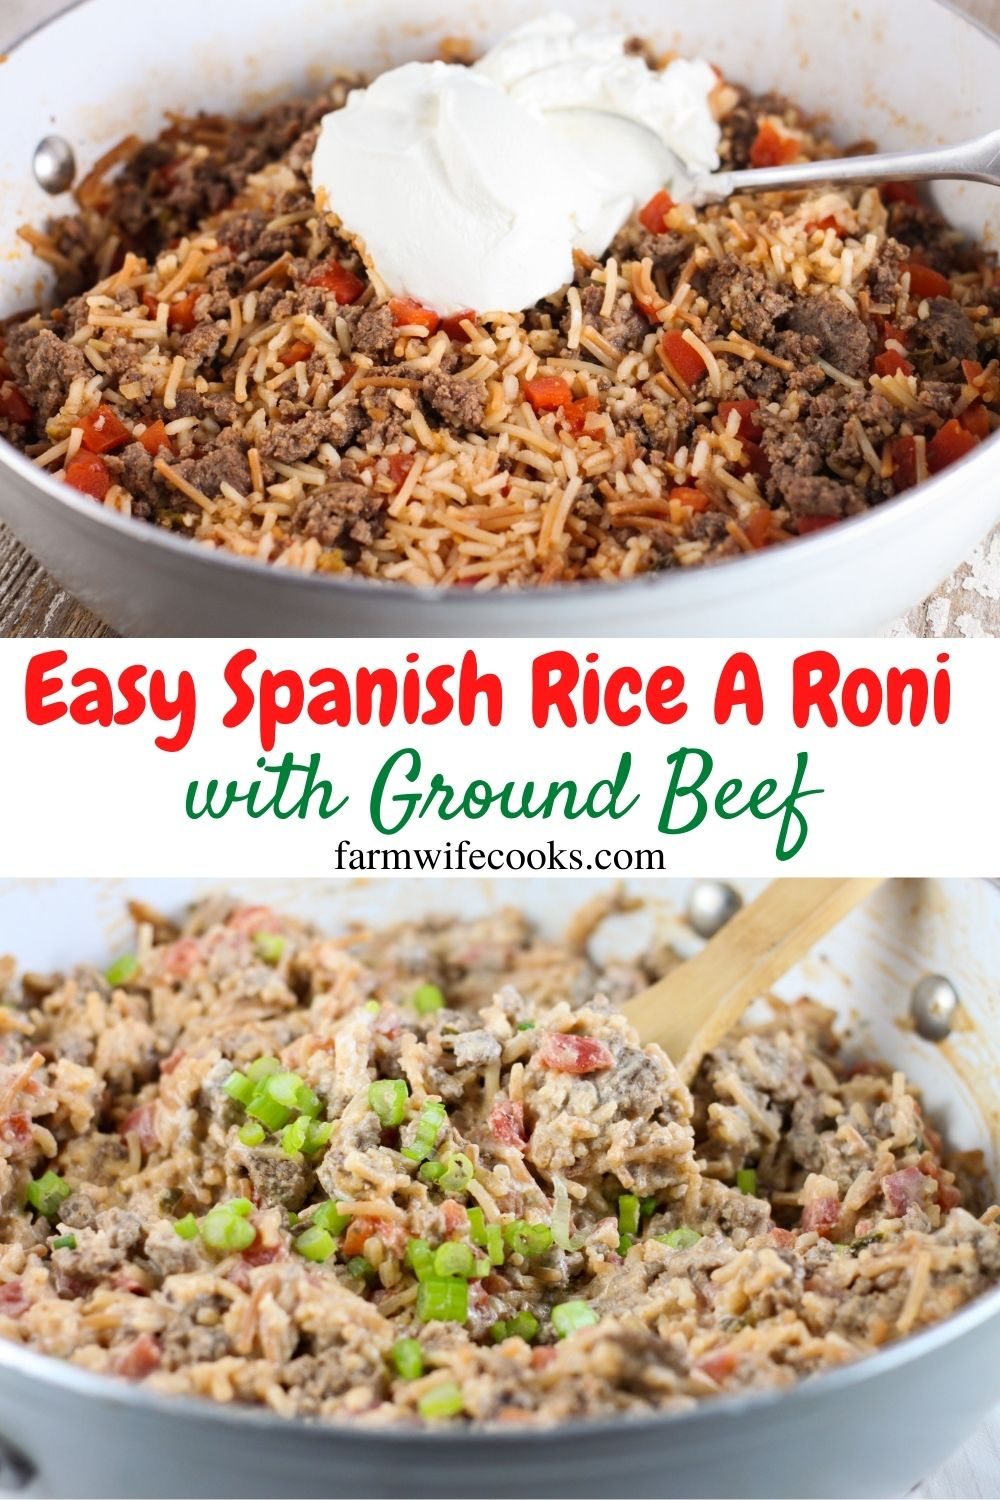 Easy Spanish Rice A Roni with Ground Beef